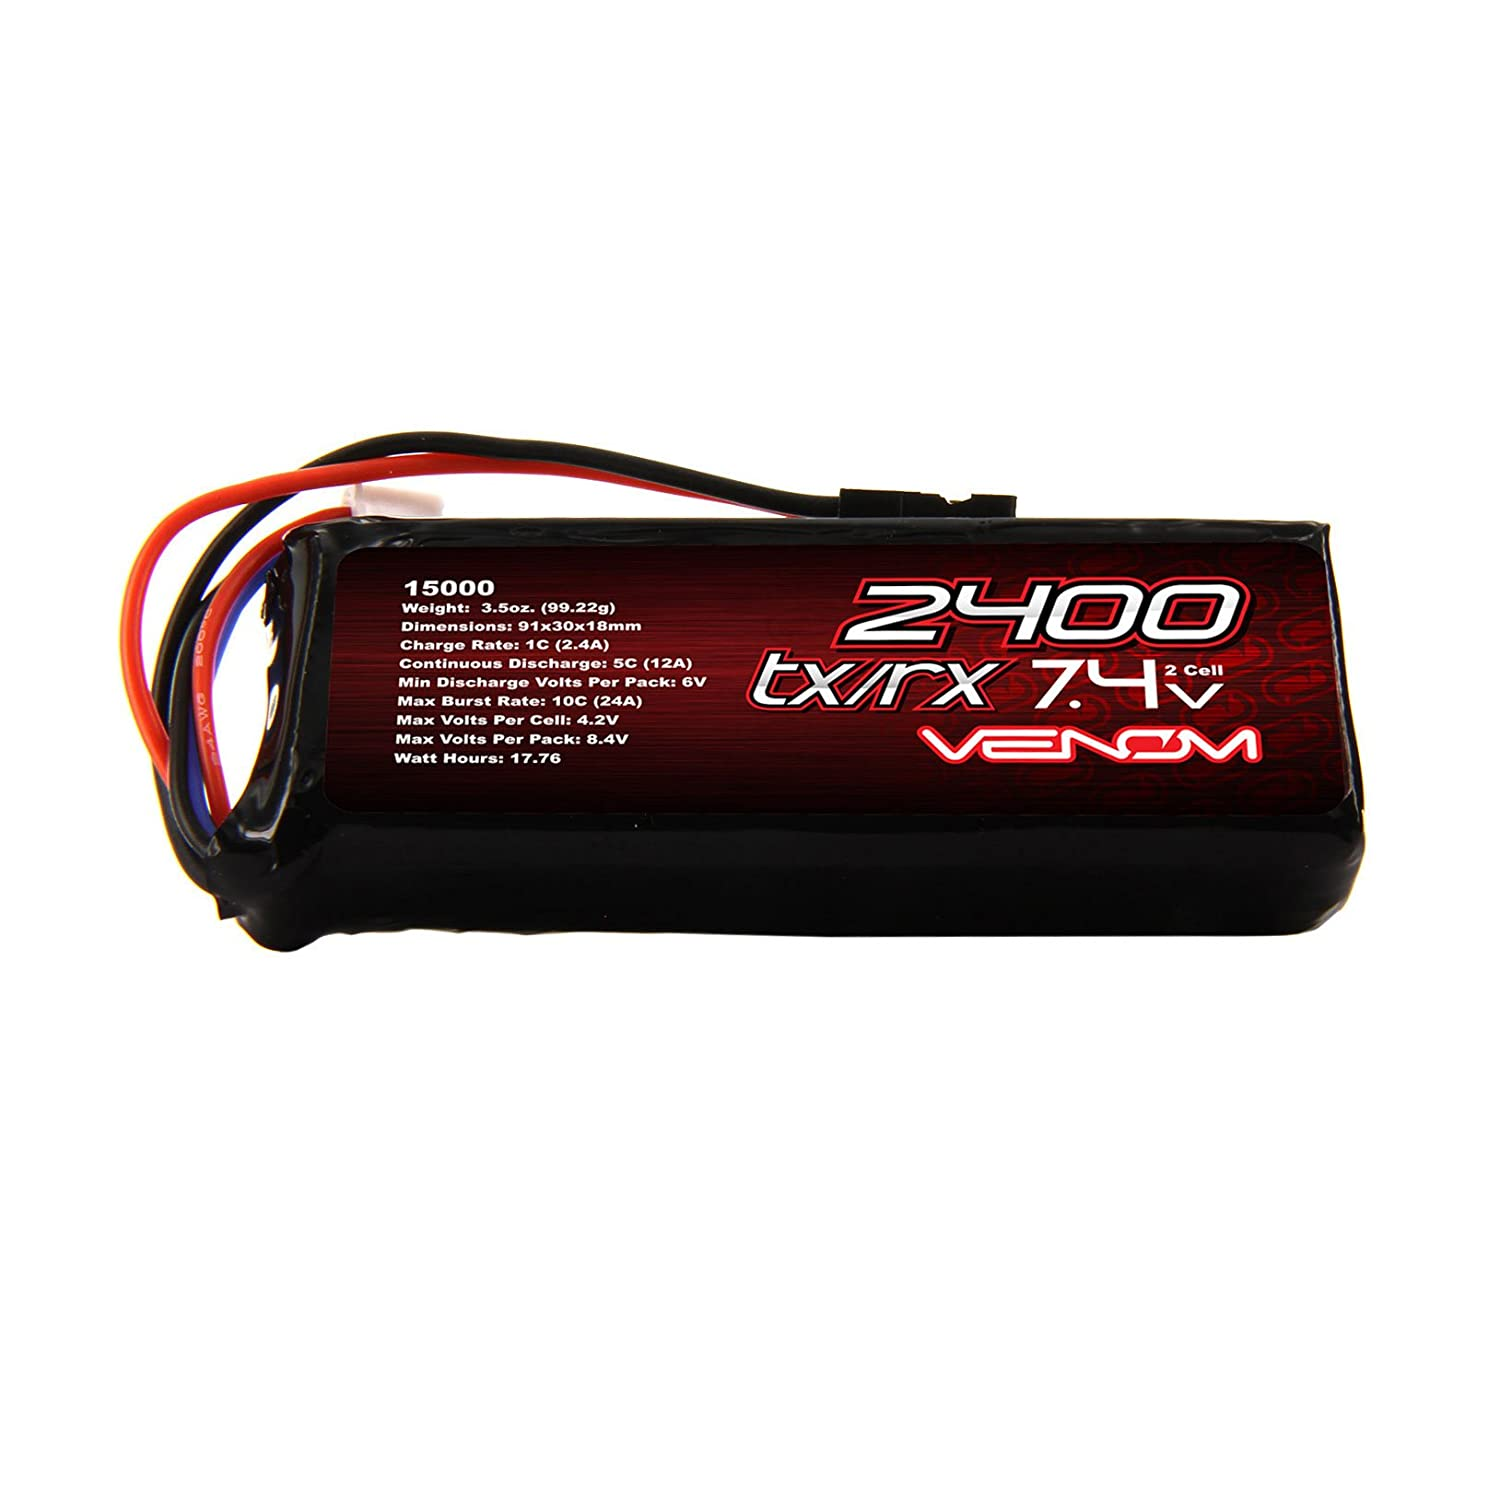 Venom 5c 2s 2400mah 74 Receiver Transmitter Flat Pack Lipo Battery How Can I Power The Es Series With 5 Volts Toys Games